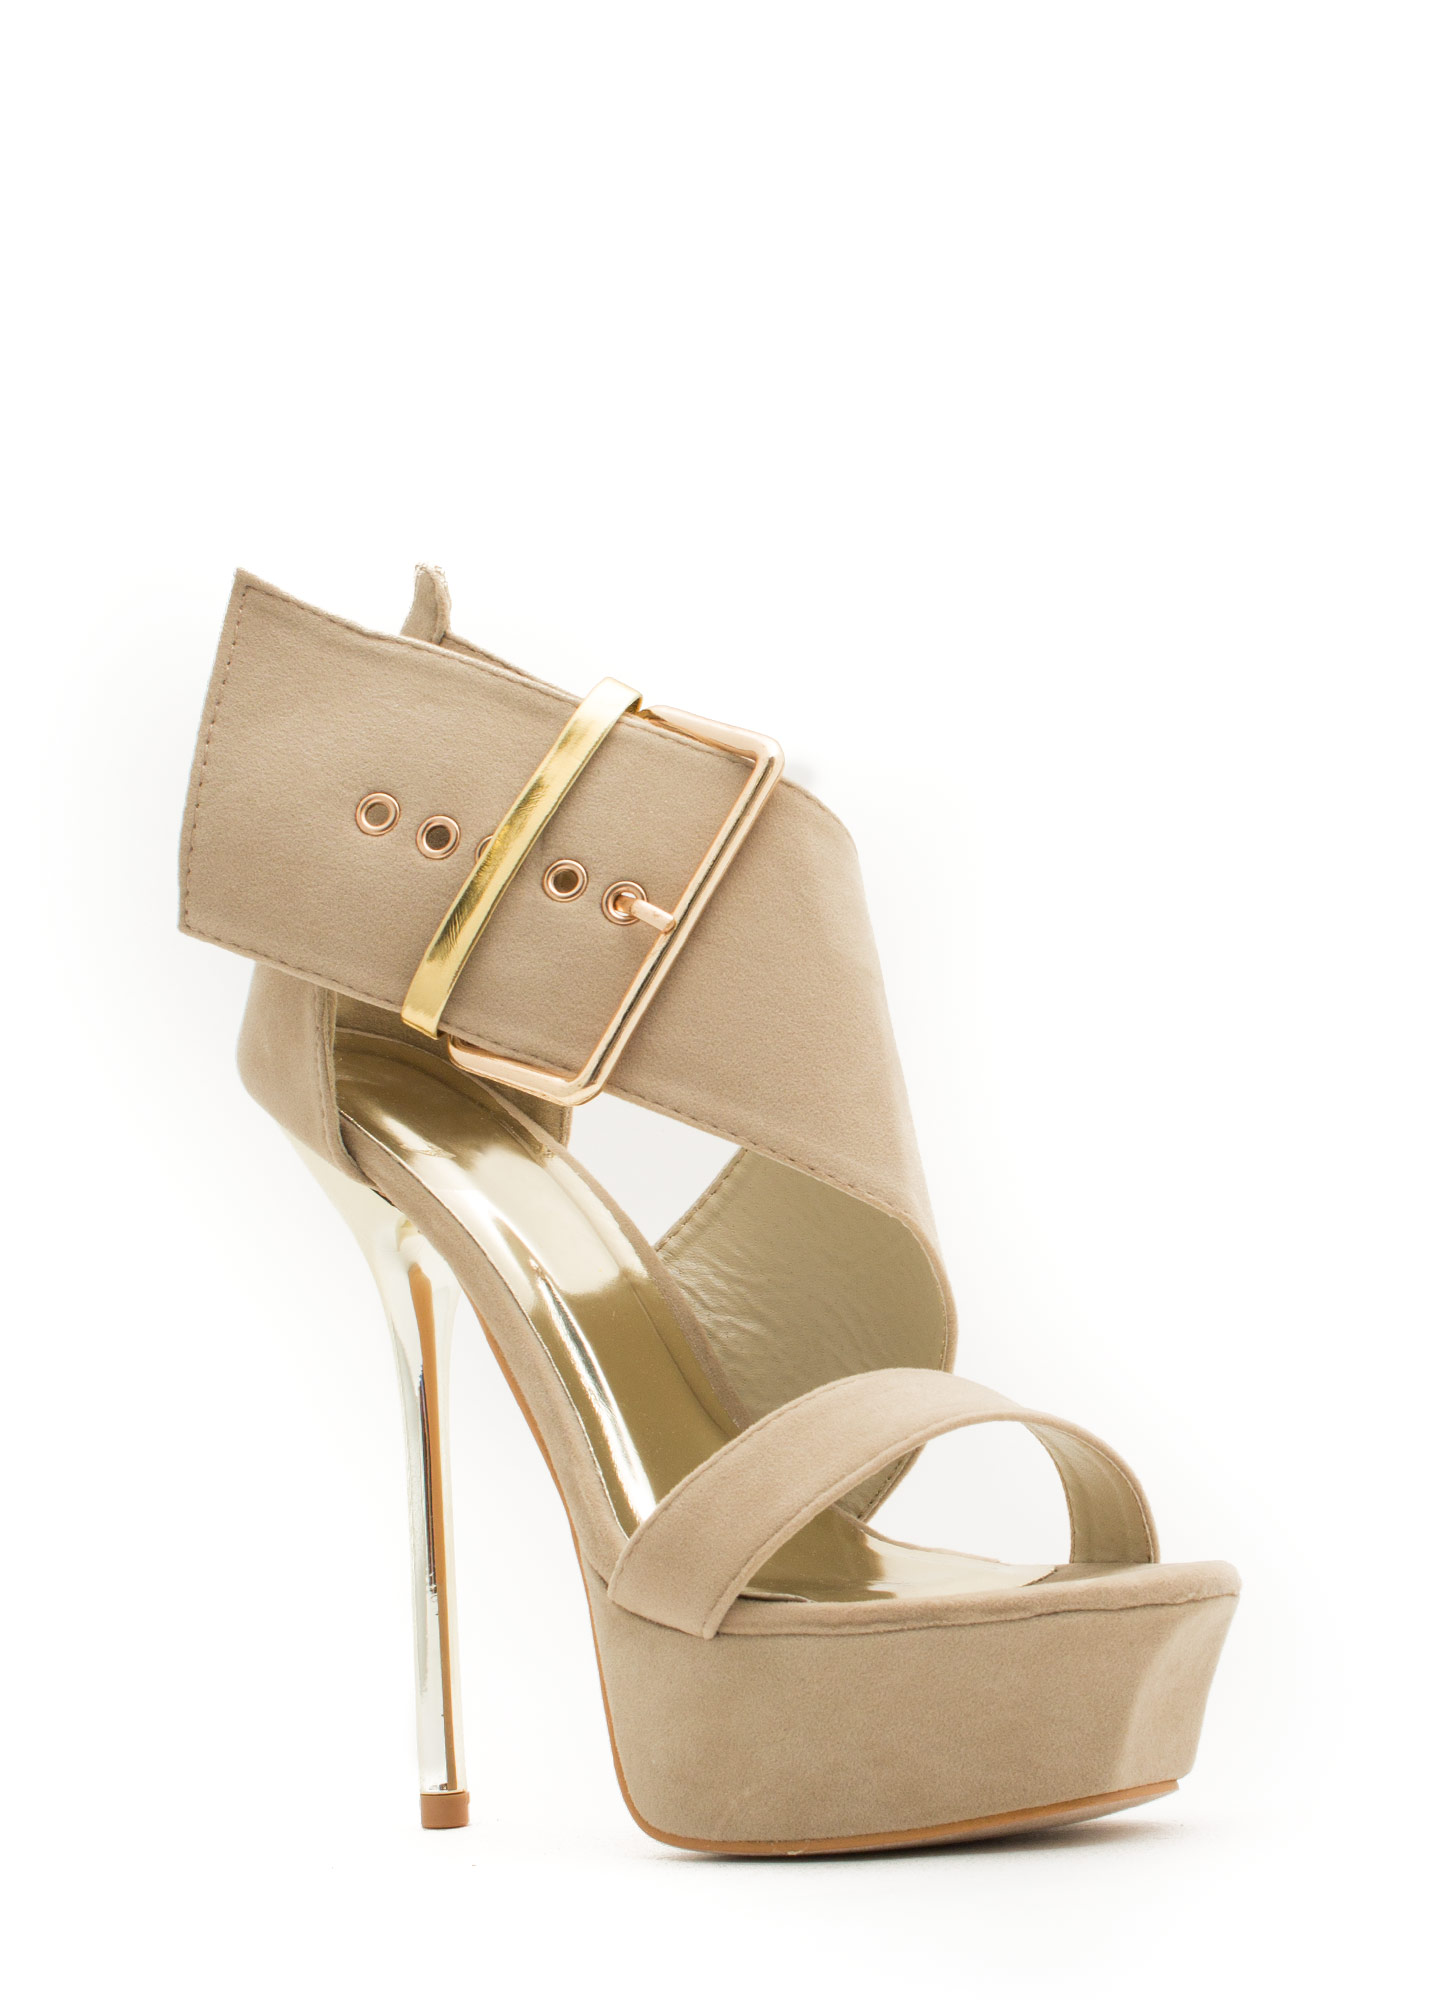 It's A Wrap Big Buckle Platform Heels NUDE